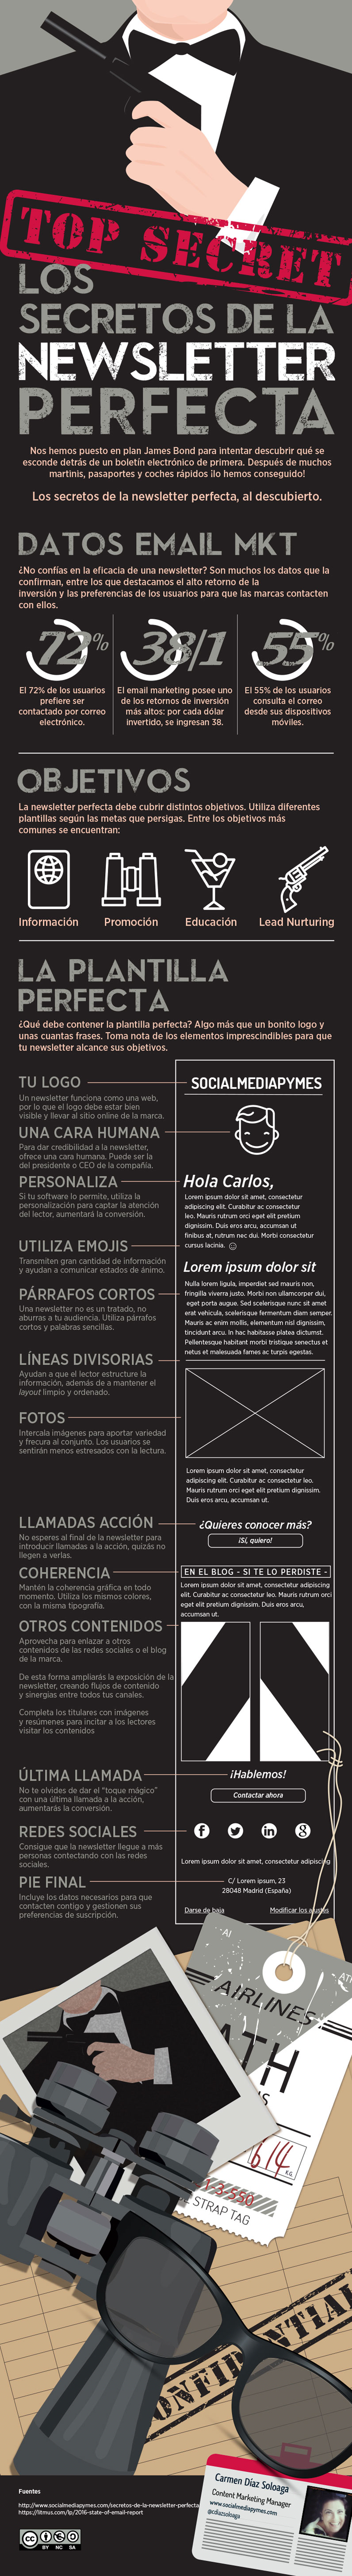 Los secretos de la NewsLetter perfecta